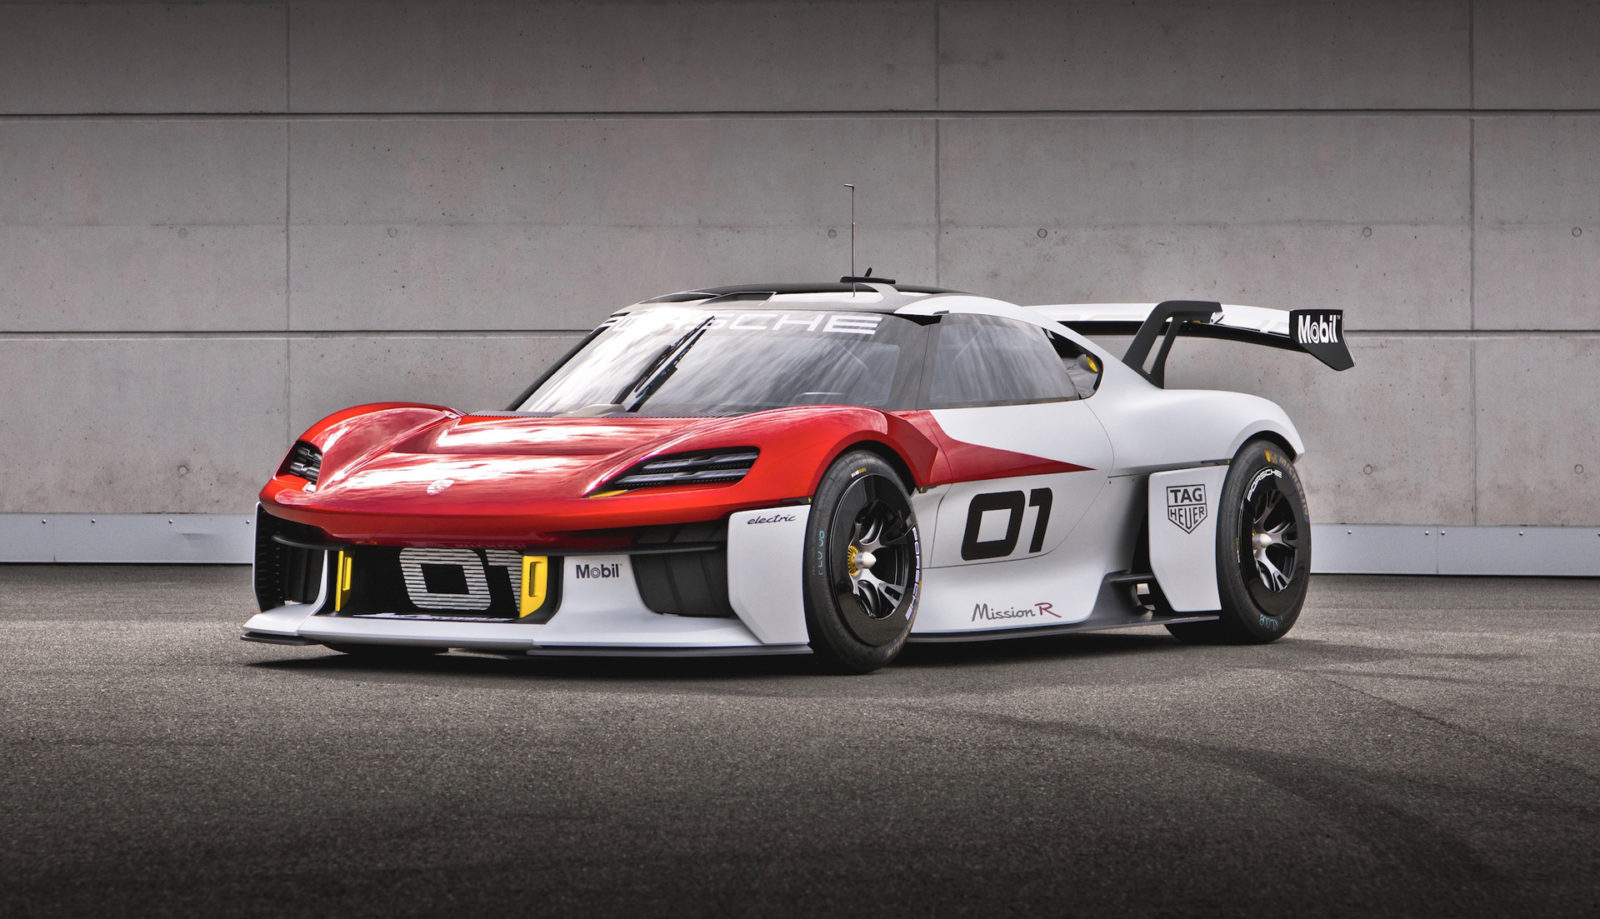 porsche-mission-r-electric-racer-concept-packs-1,073-hp,-may-preview-718-cayman-ev